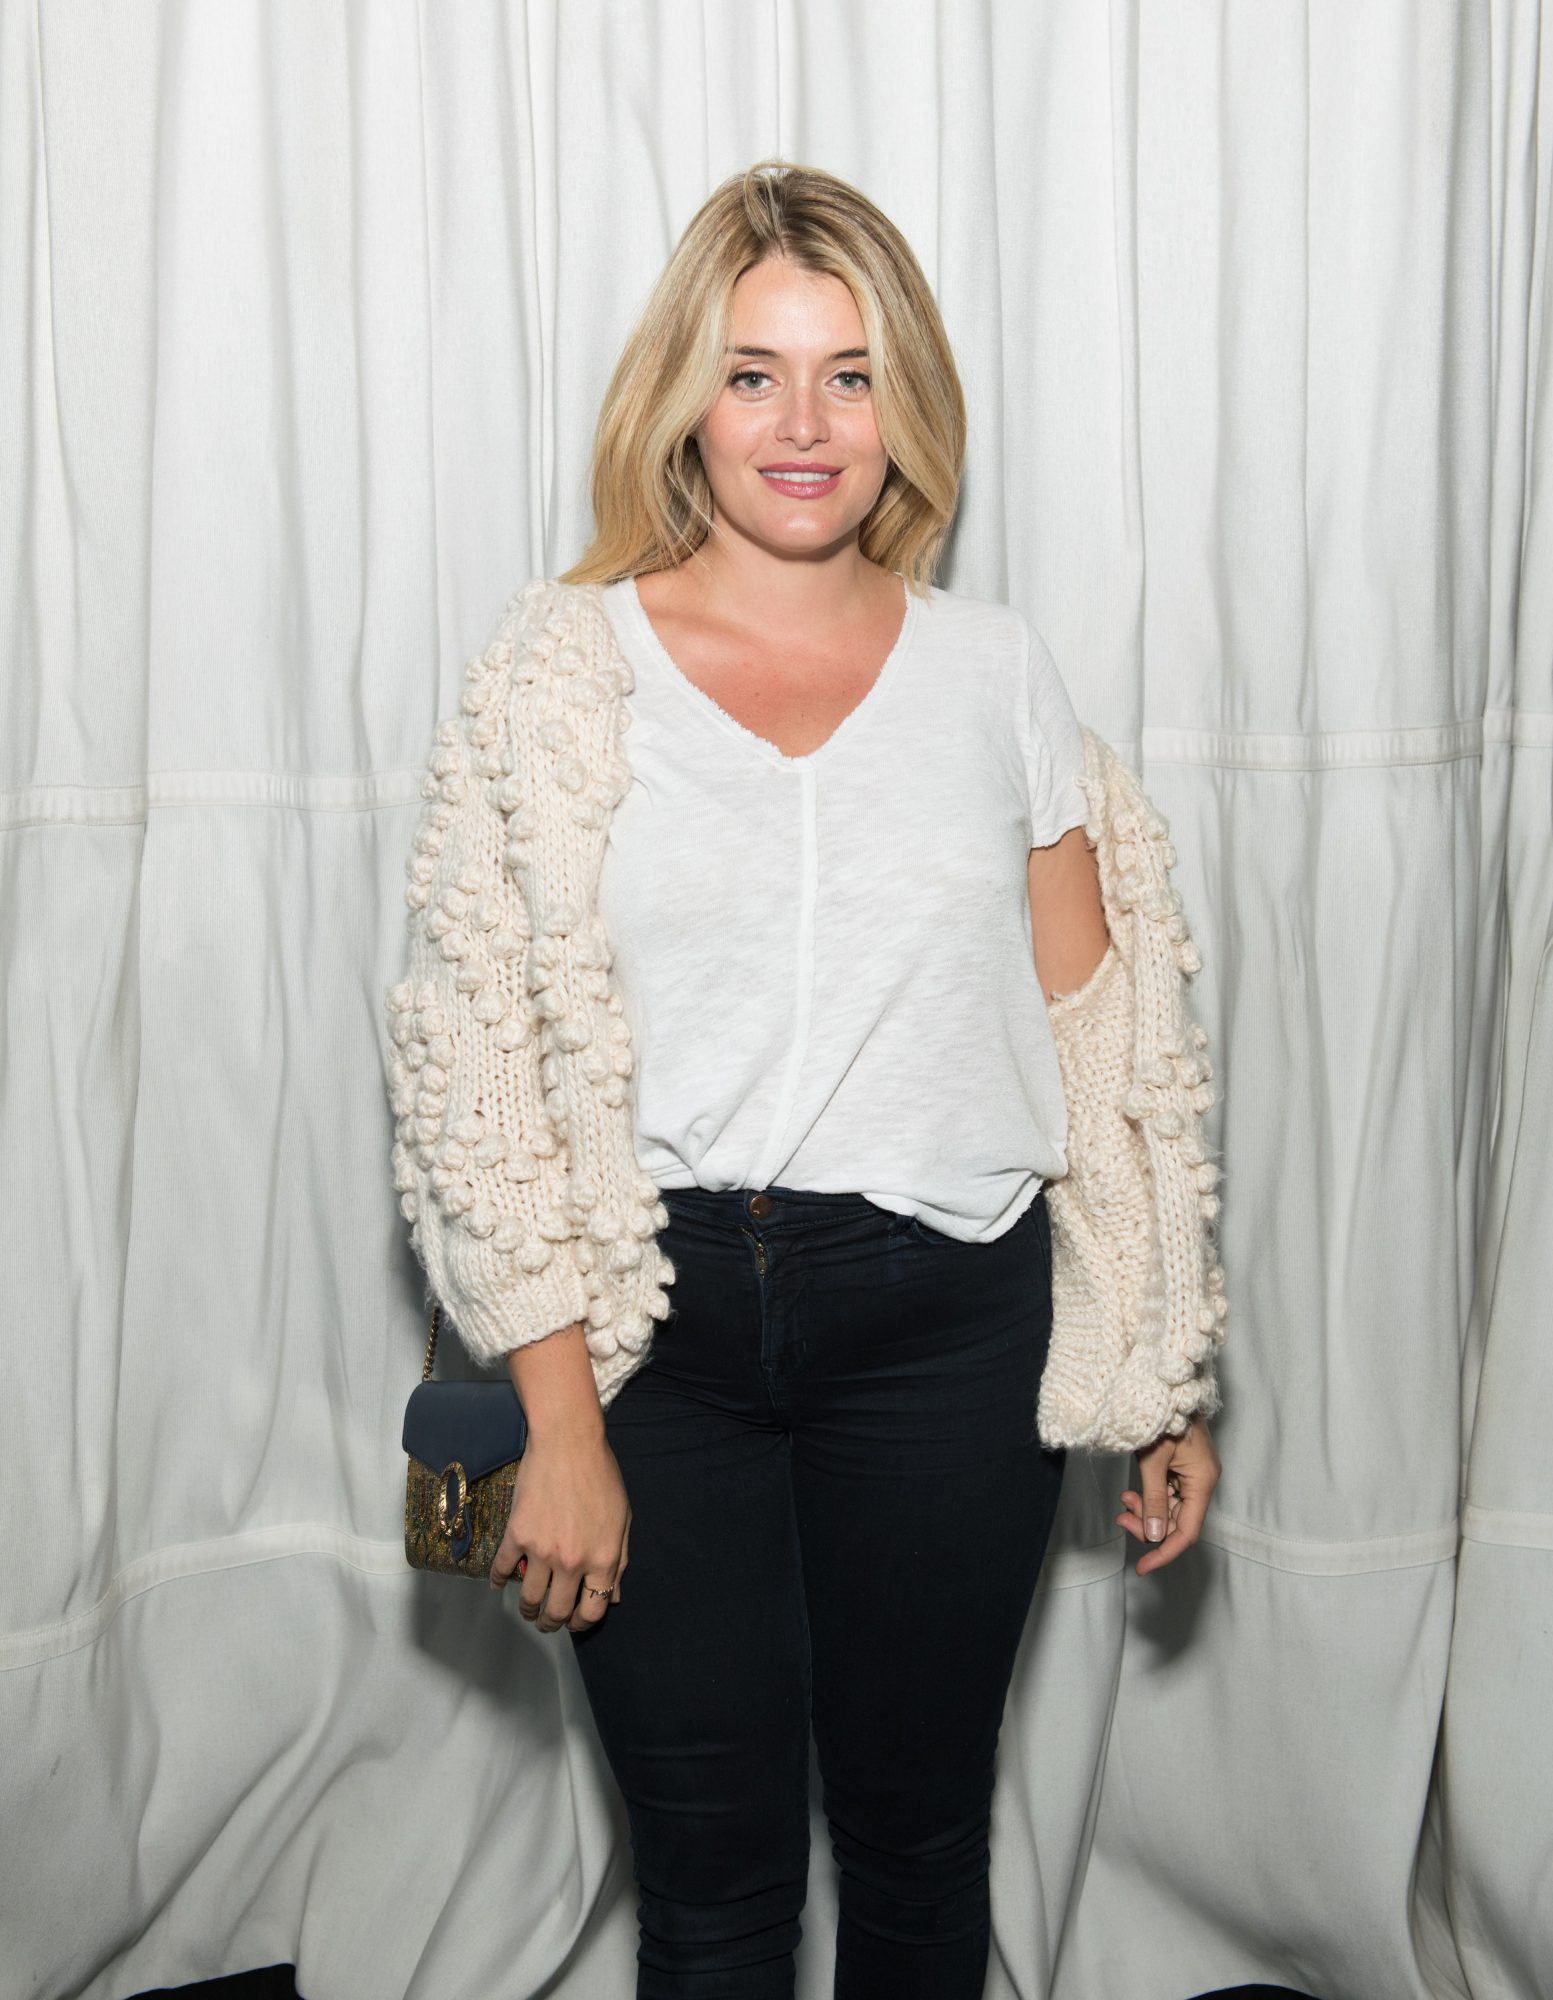 3 Meal Prep Hacks Daphne Oz Swears By